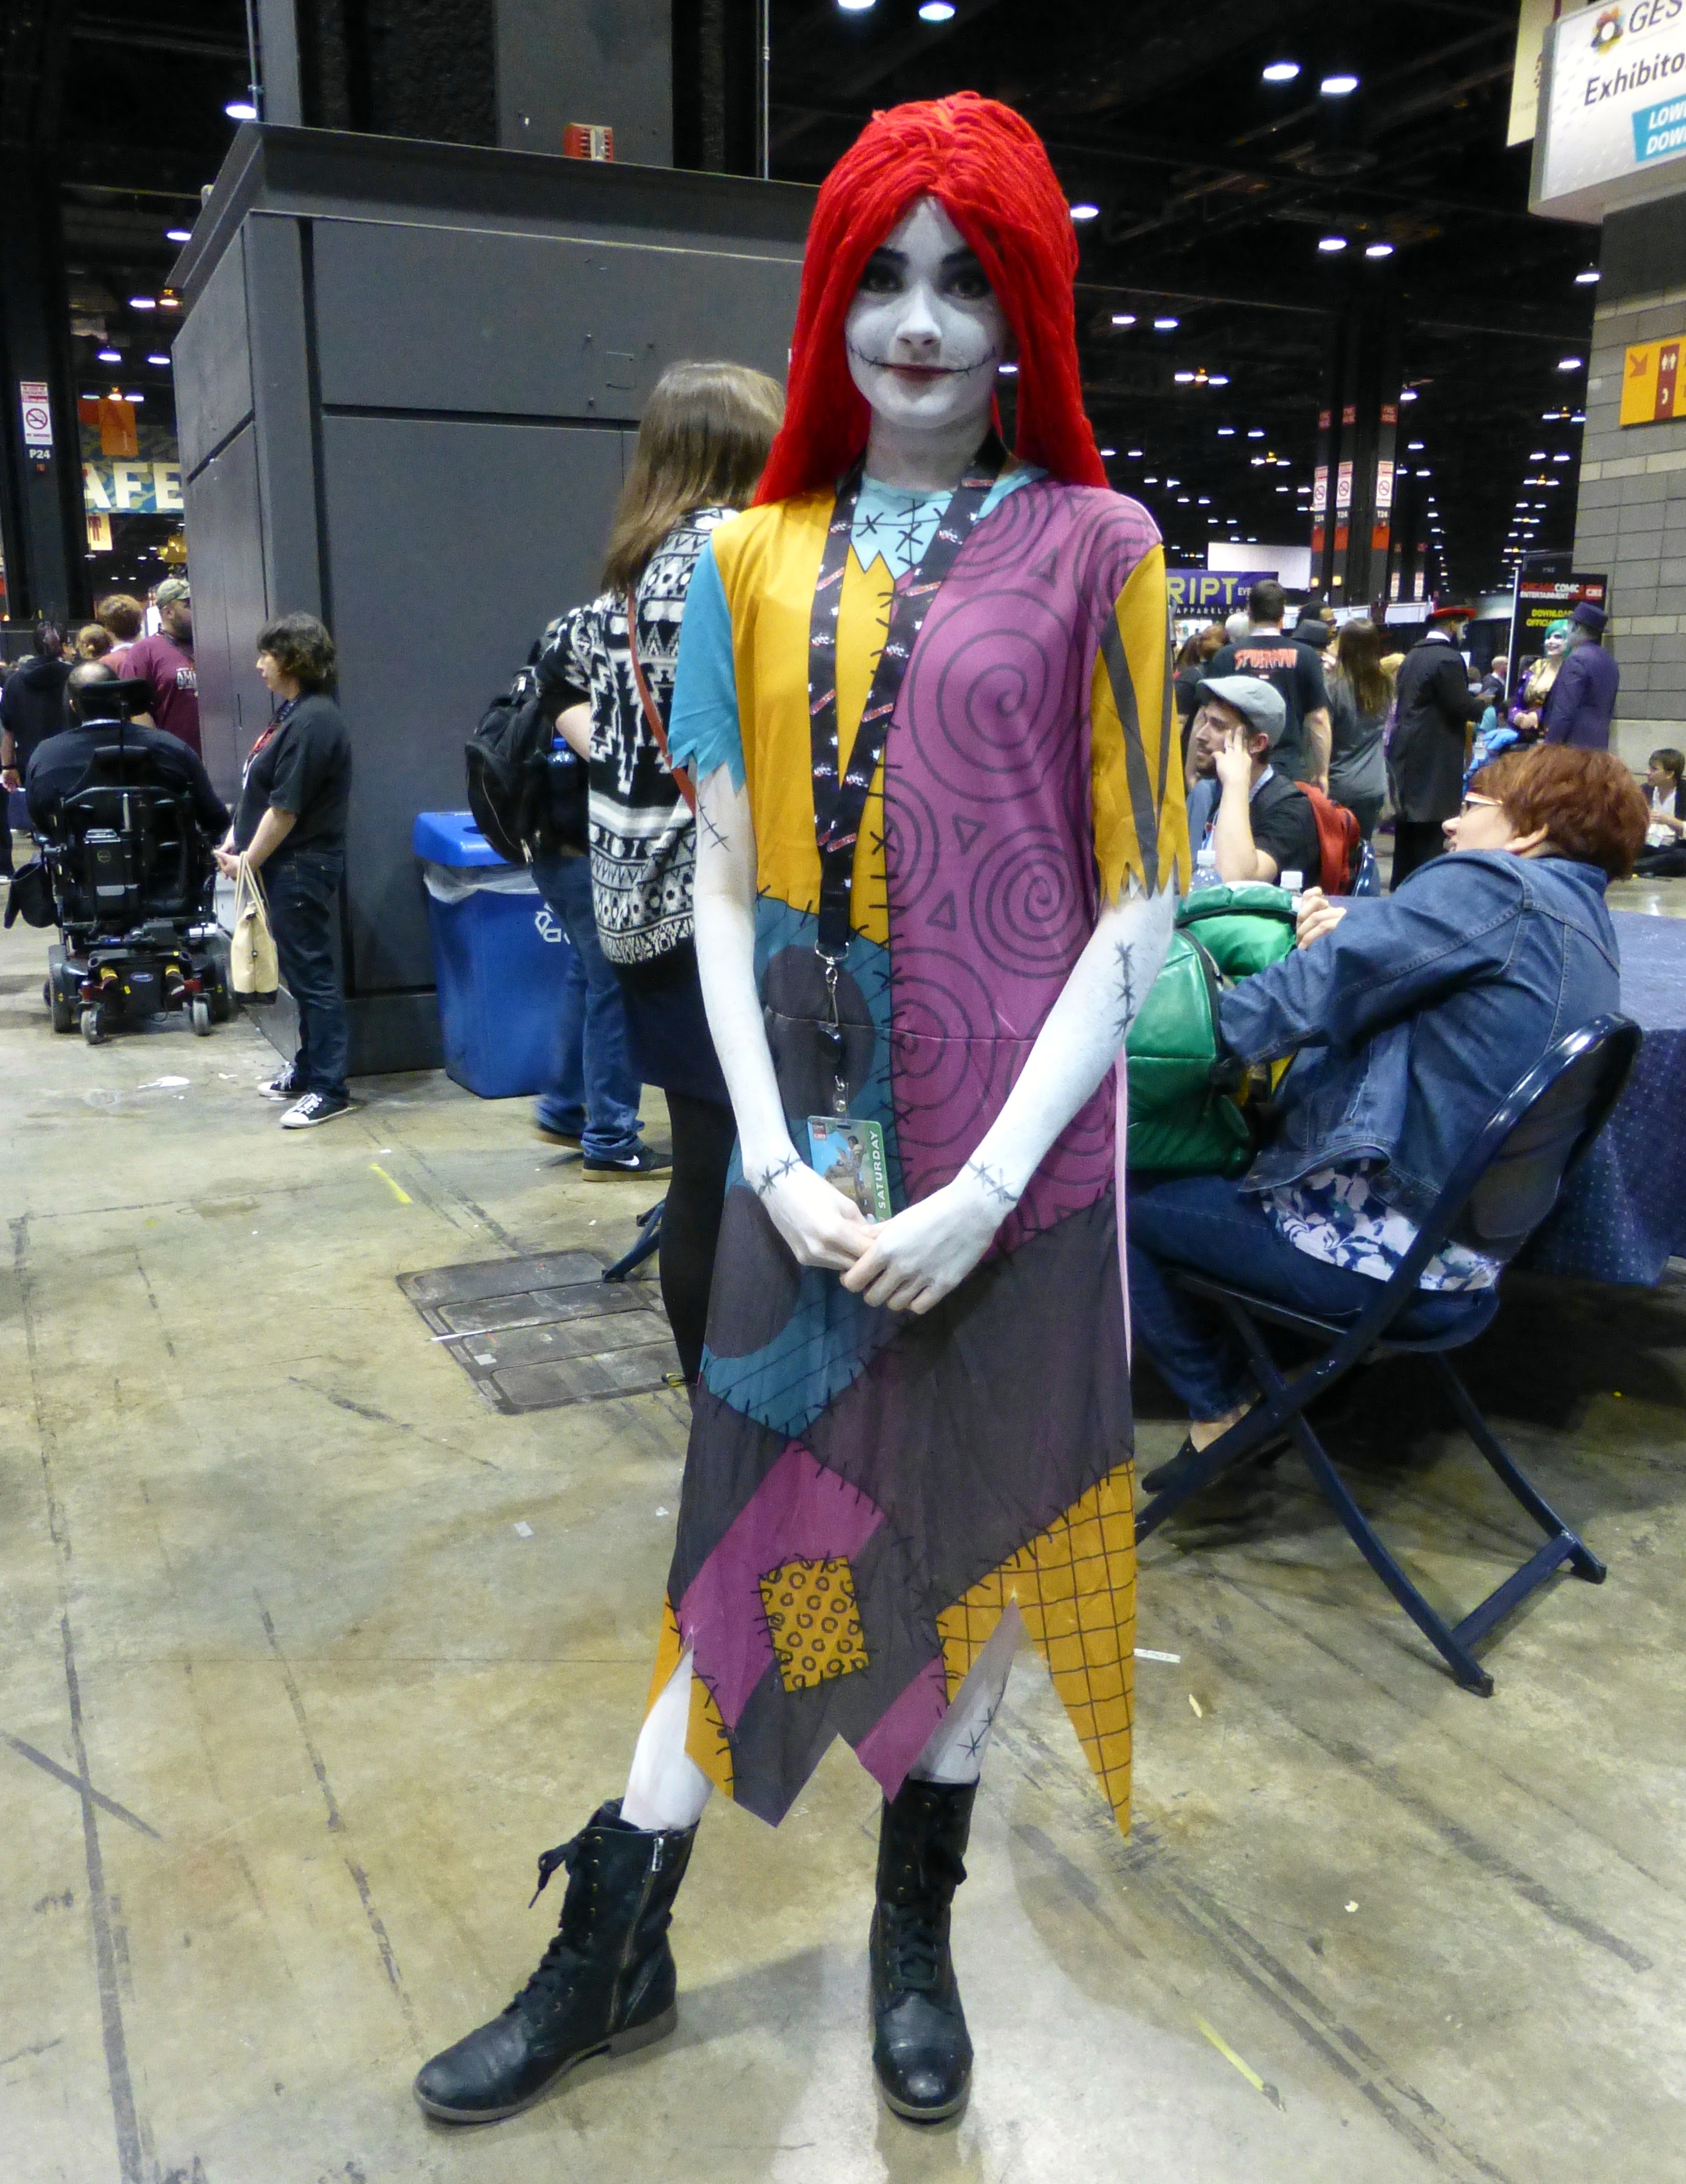 File:C2E2 2015 - Sally (17130099728).jpg - Wikimedia Commons